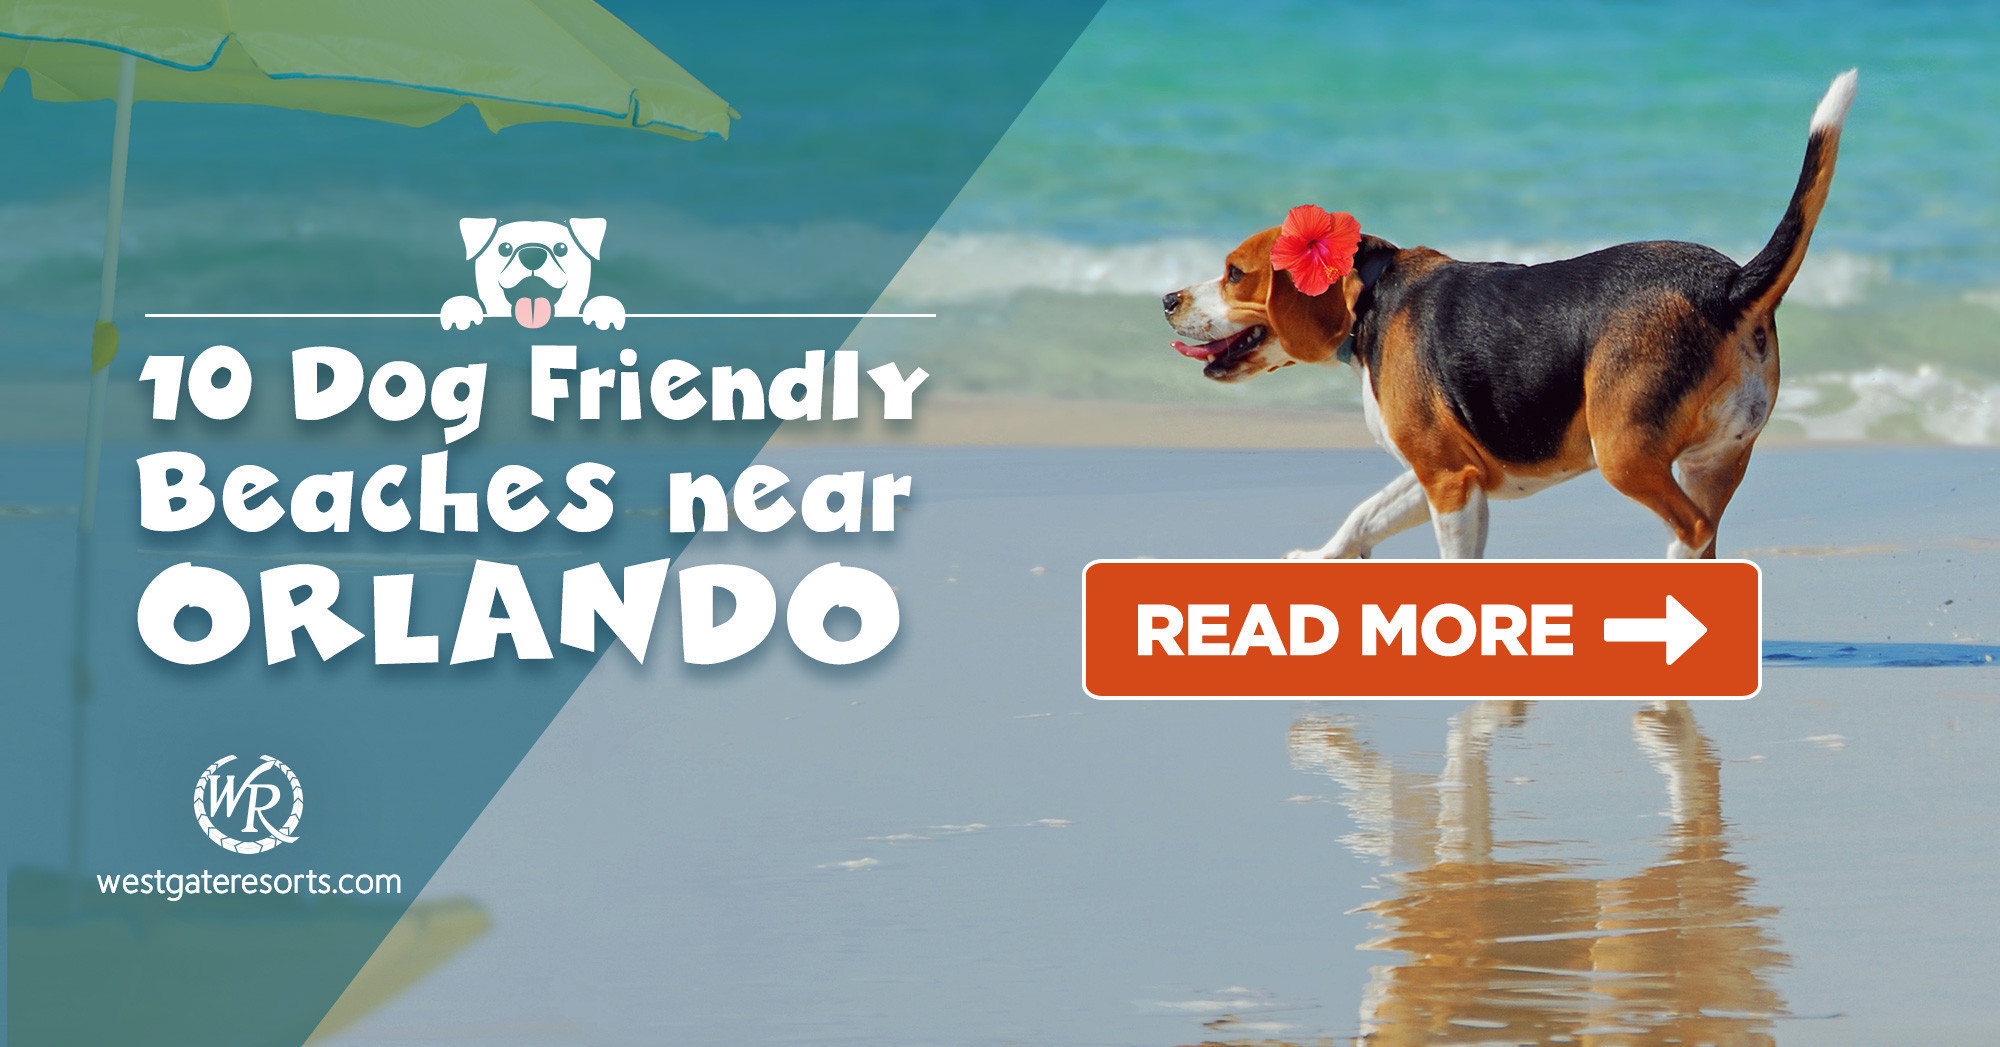 10 Dog Friendly Beaches Near Orlando